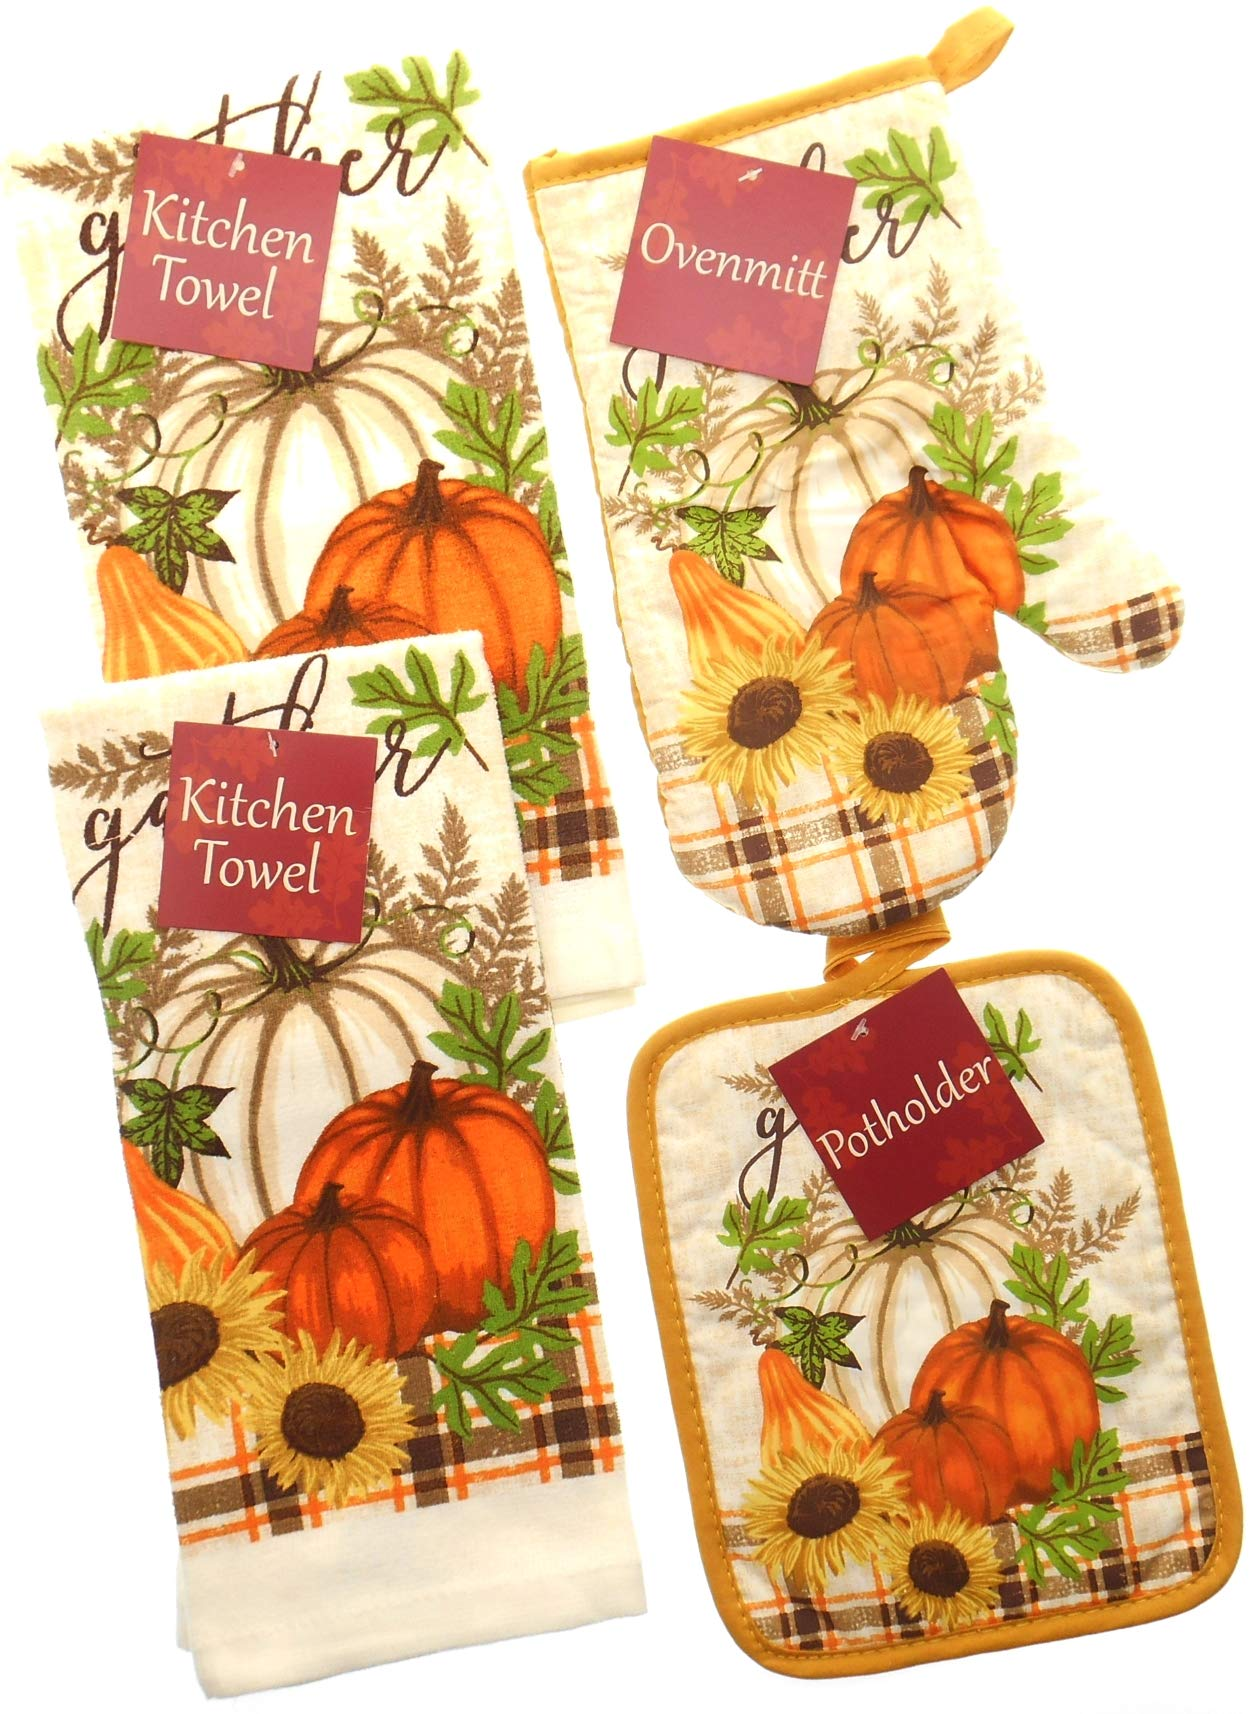 Gather with Orange and Brown Plaid Accent Kitchen Towel Set. Featuring Orange and White Pumpkin. Bundle of 4 Includes 2 Towels, 1 Oven Mitt and 1 Pot Holder. Fall Kitchen Towels Set.